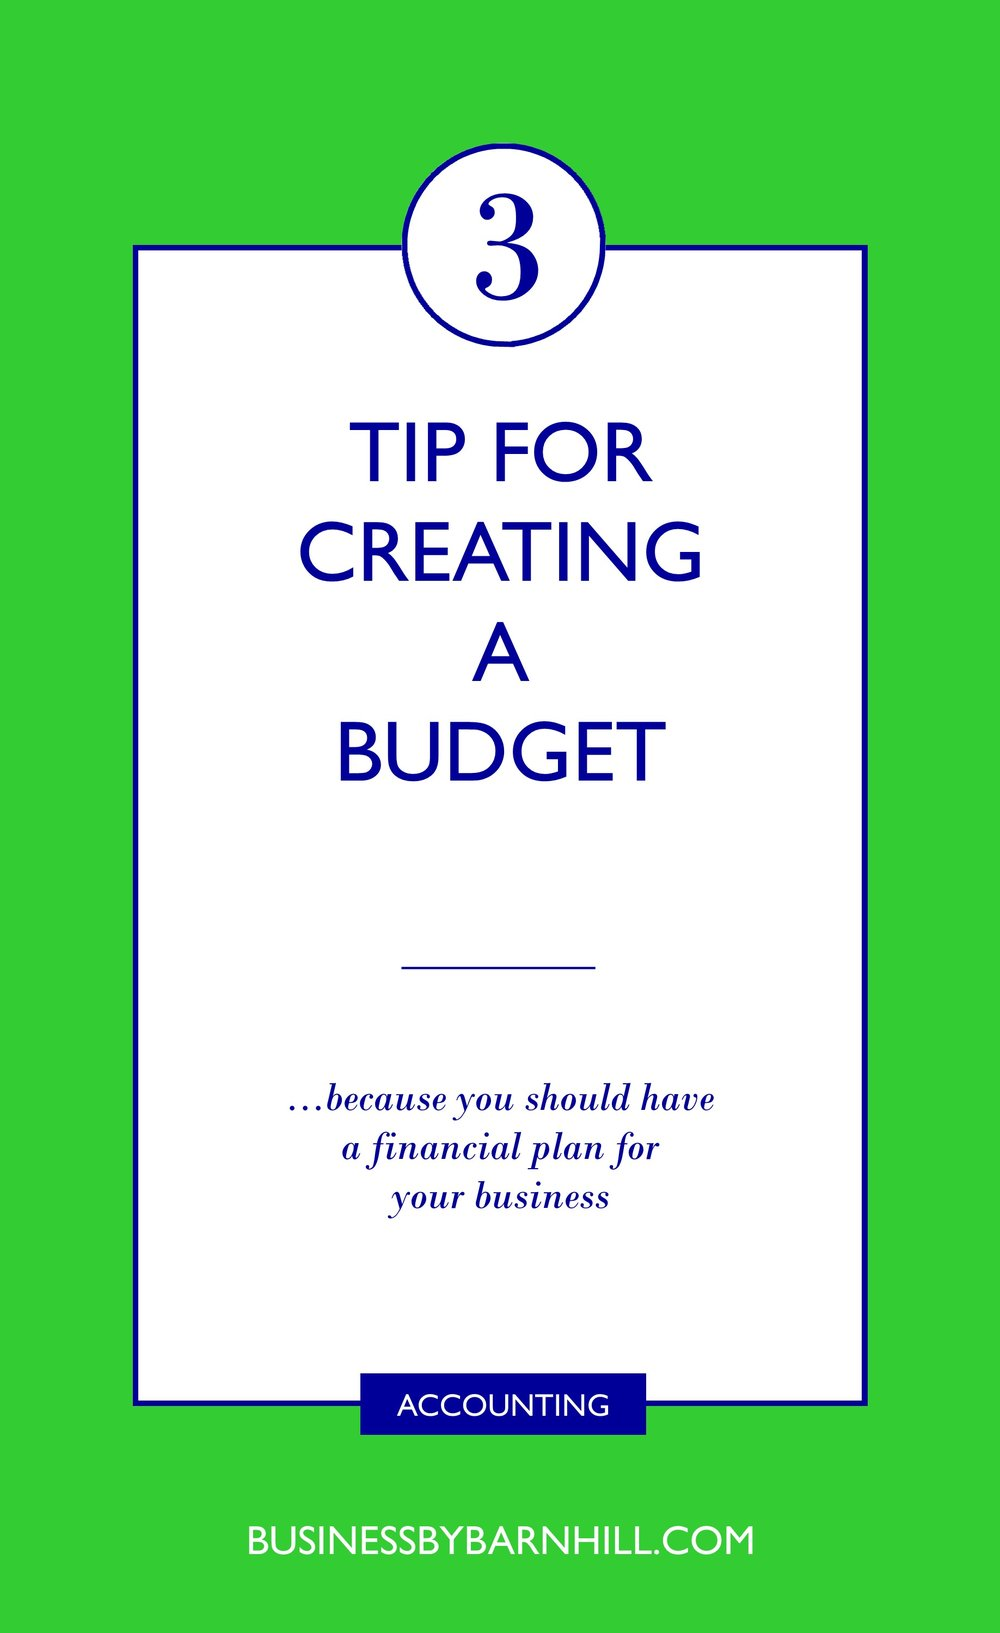 business by barnhill pinterest 3 tips for creating a budget.jpg